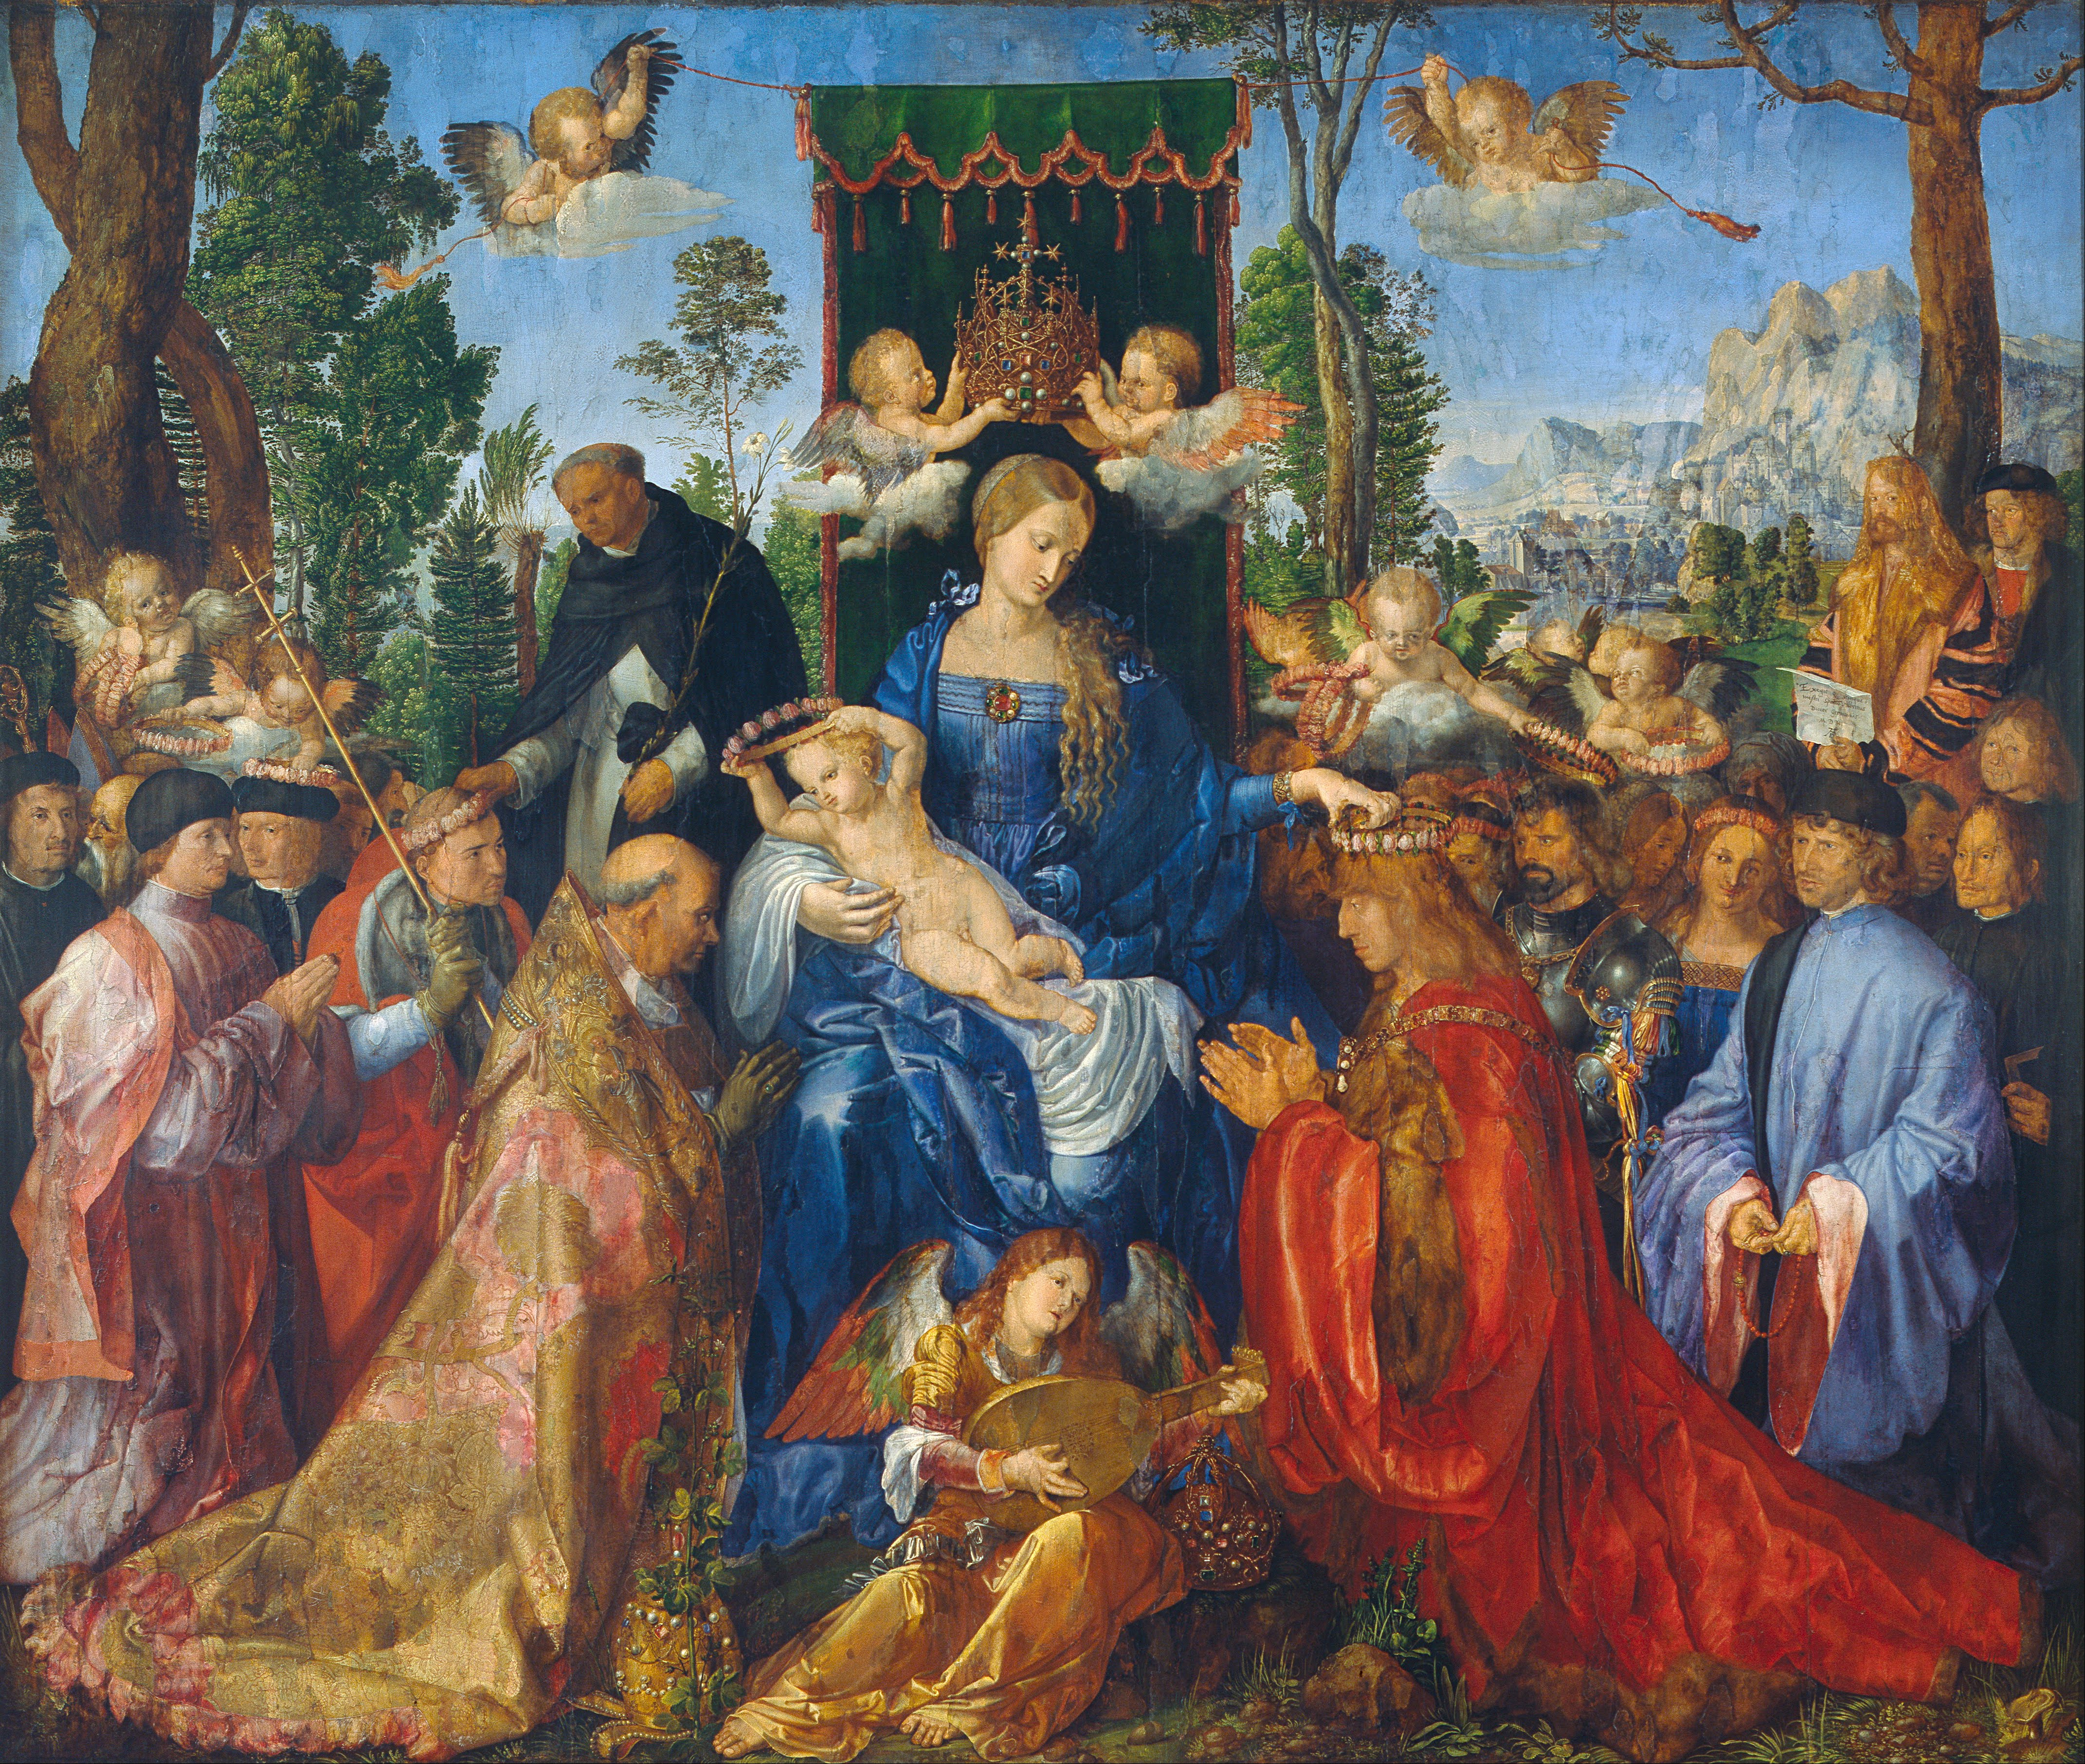 Albrecht_Dürer_-_Feast_of_Rose_Garlands_-_Google_Art_Project.jpg